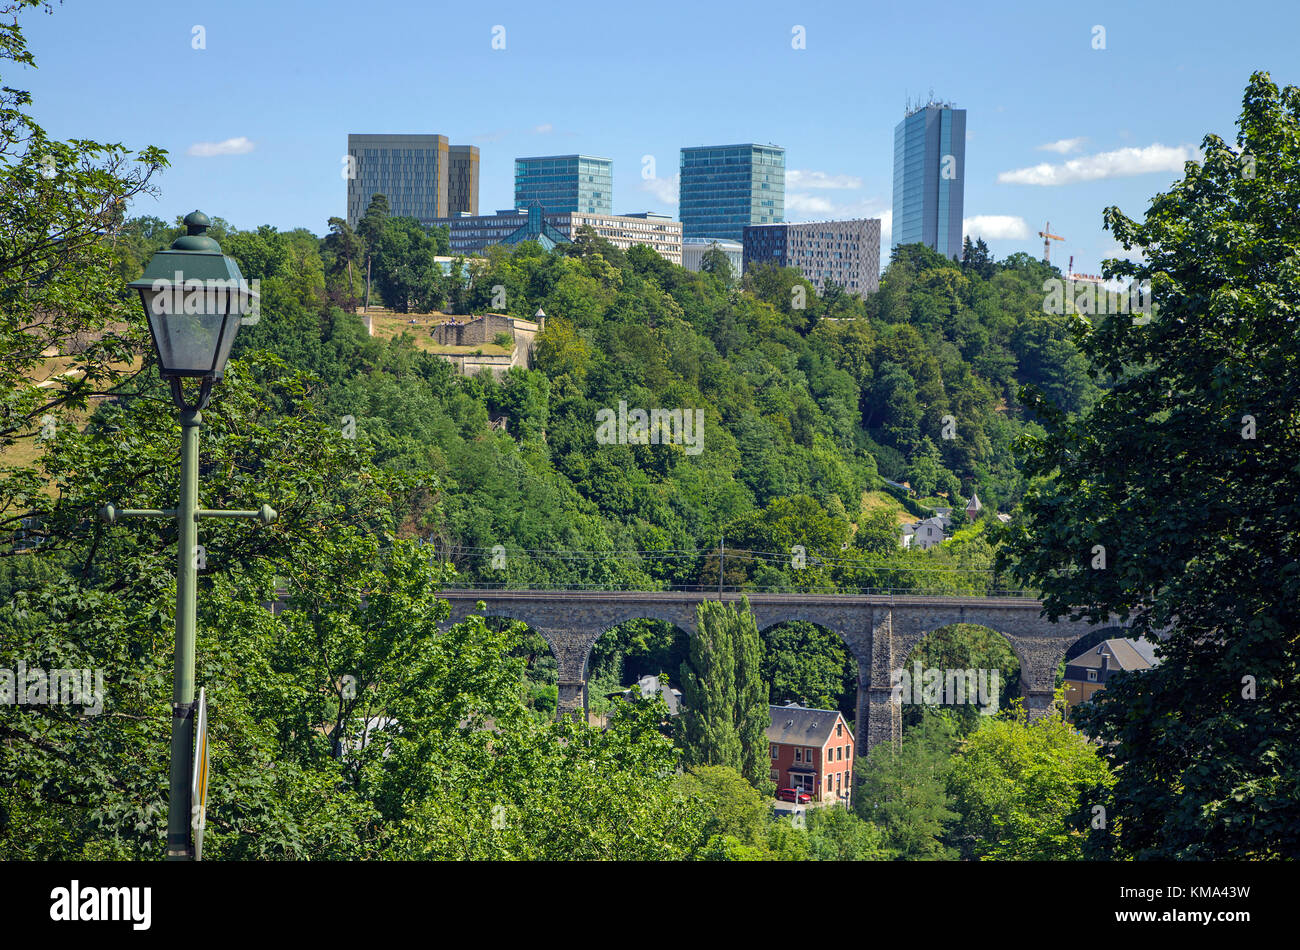 Europe district on Kirchberg and Pfaffenthal viaduct, Luxembourg-city, Luxembourg, Europe - Stock Image